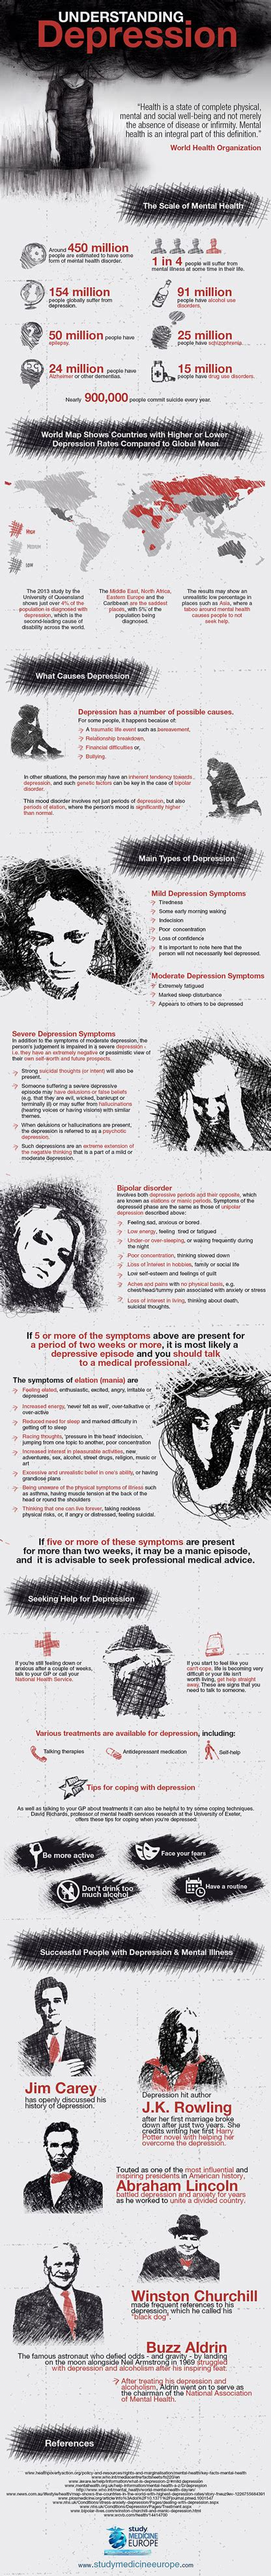 safety professional s reference and study guide second edition books understanding depression infographic from study medicine